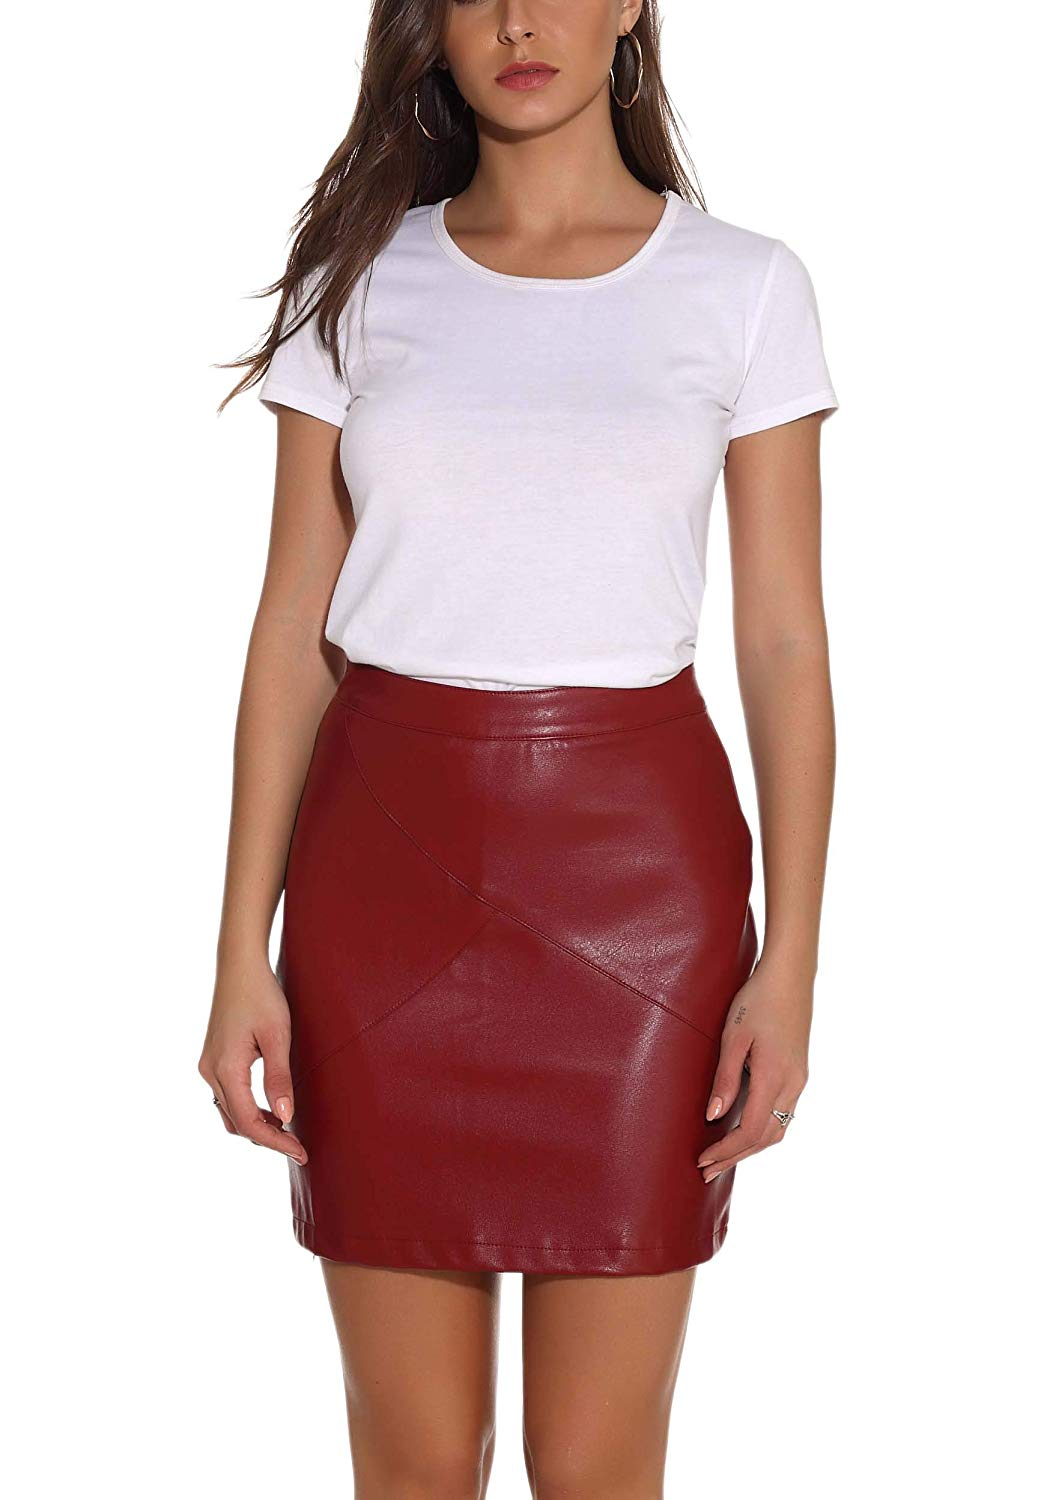 GUANYY Women's Faux Leather Vintage High Waist Classic Slim Mini Pencil Skirt AMAZON